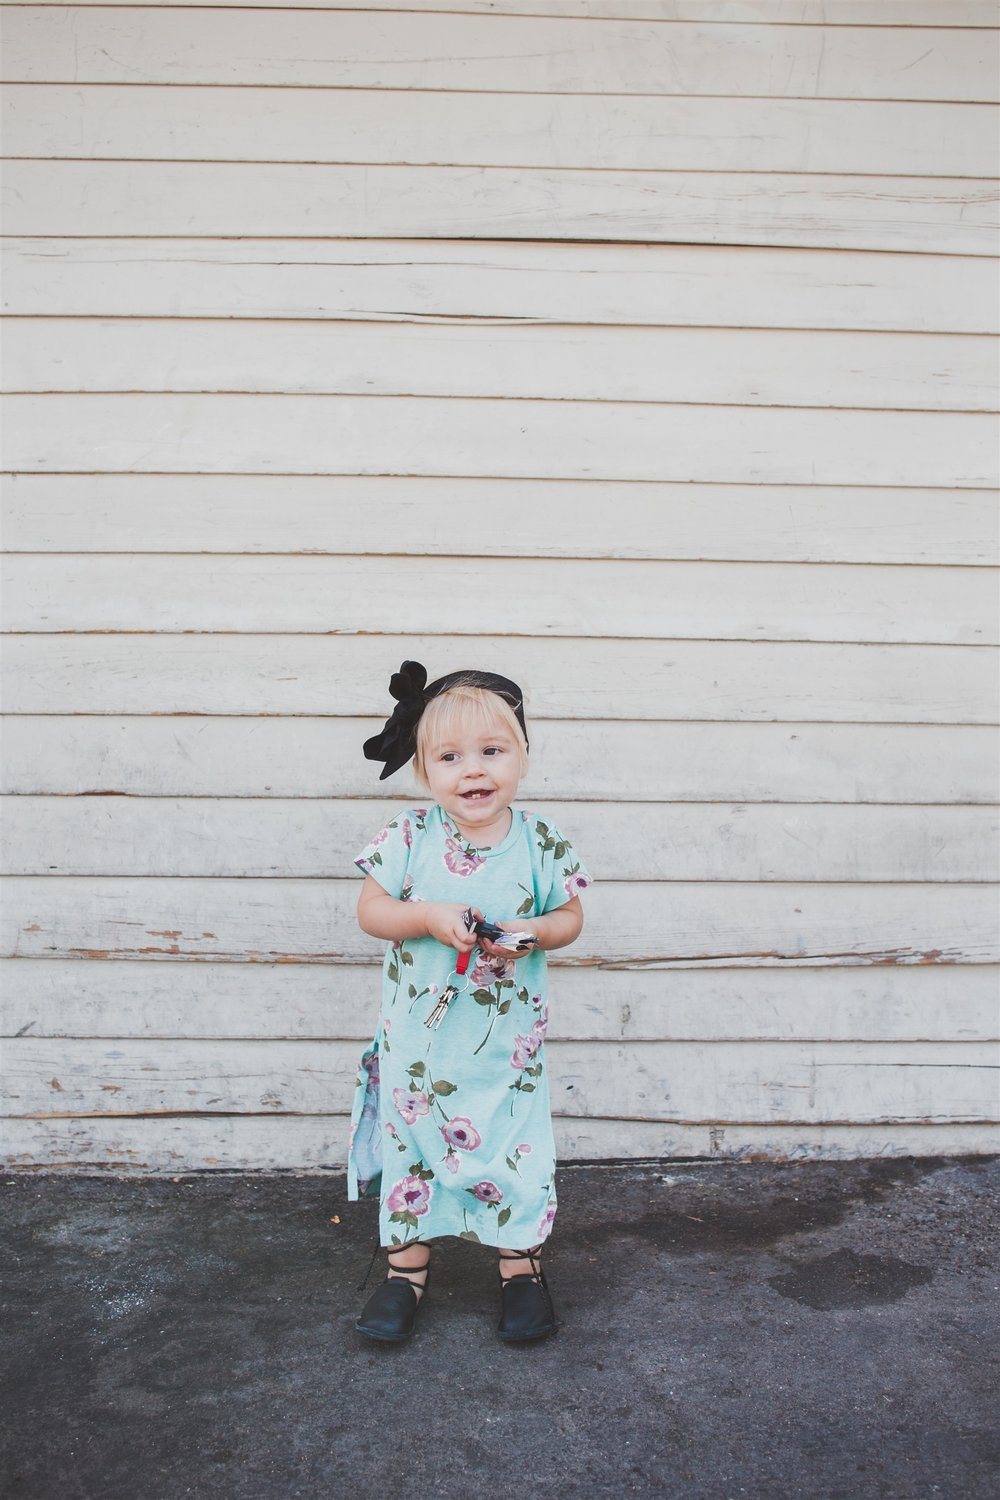 Kids Fashion -- Kids Floral Maxi Dress + Kids Lace Up Flats -- Modesty Handmade